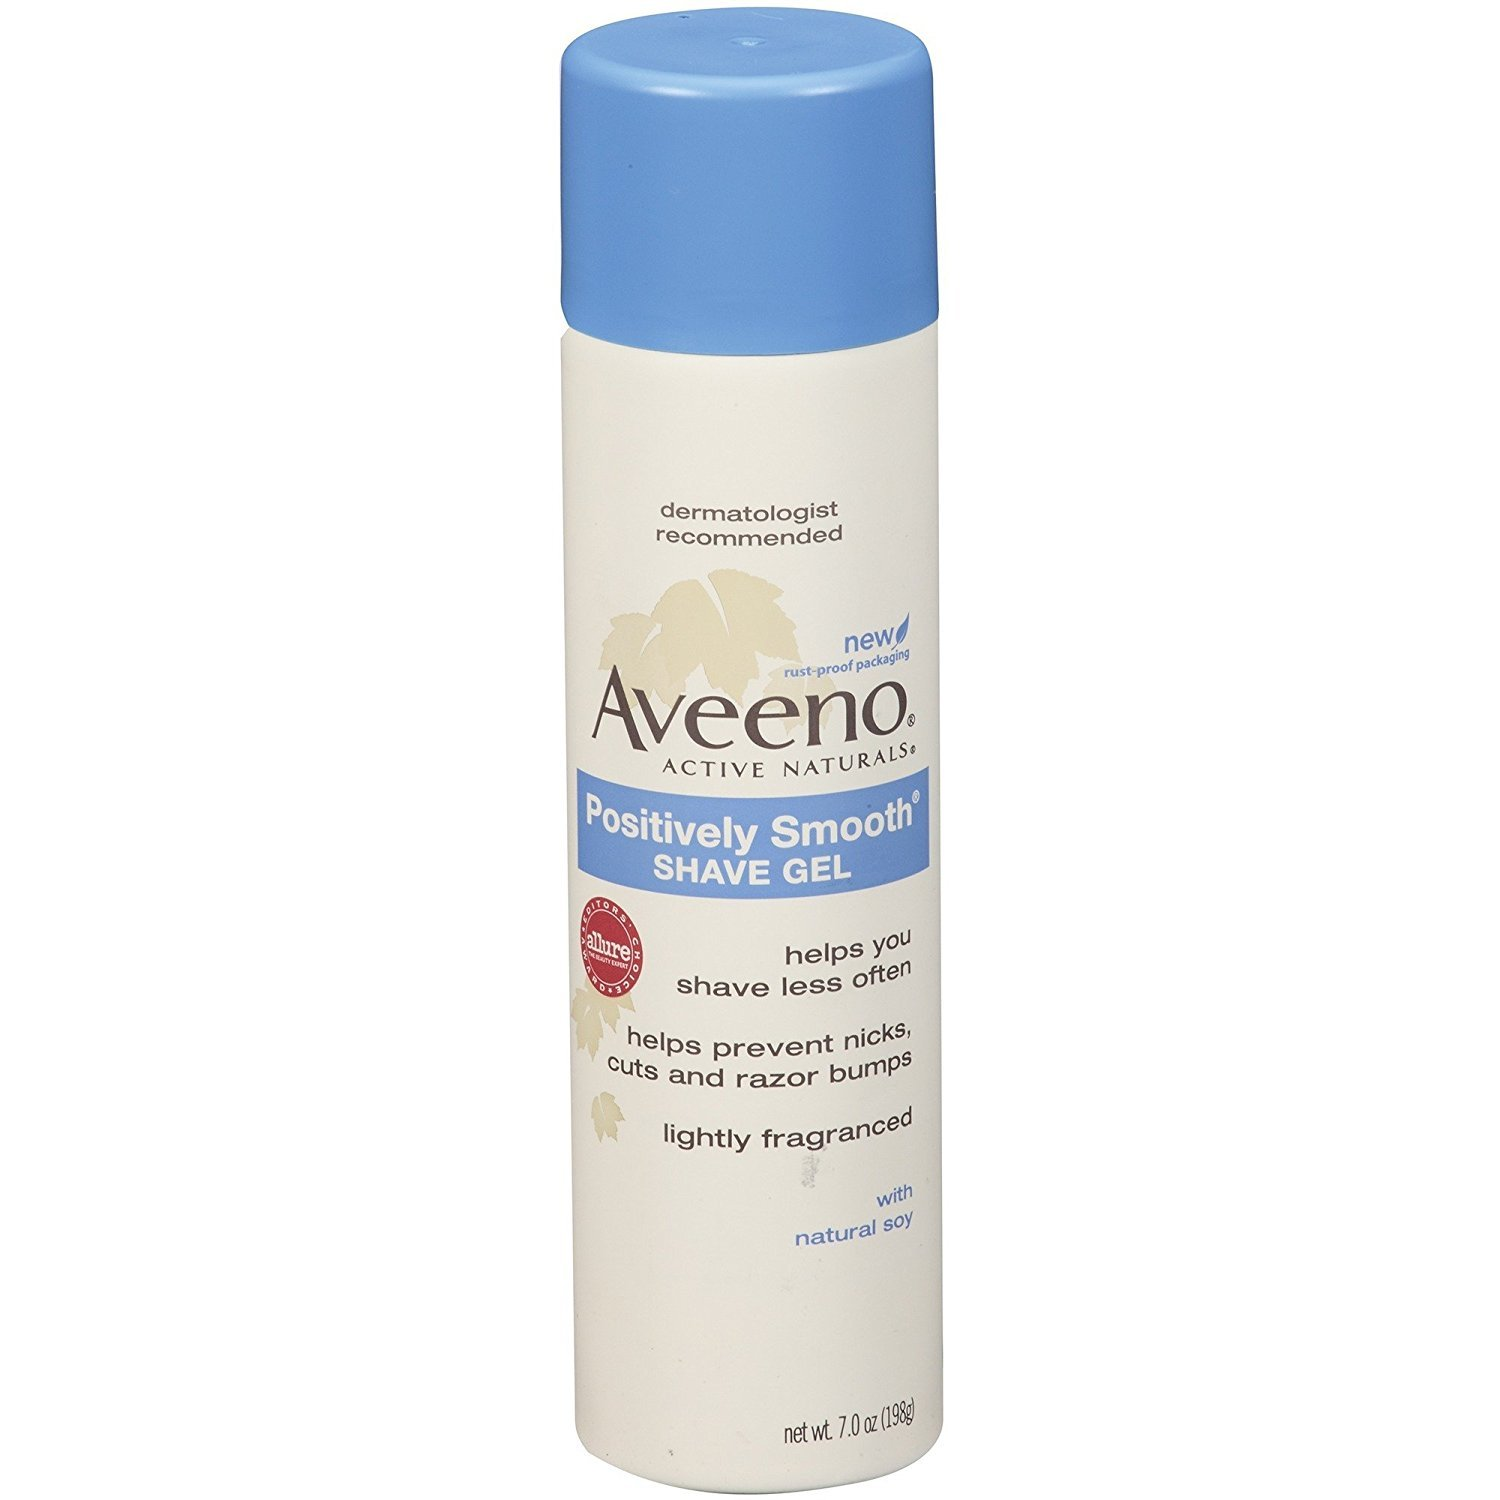 Aveeno Skin Relief Shave Gel sNrinp, 18 Bottles of 7oz